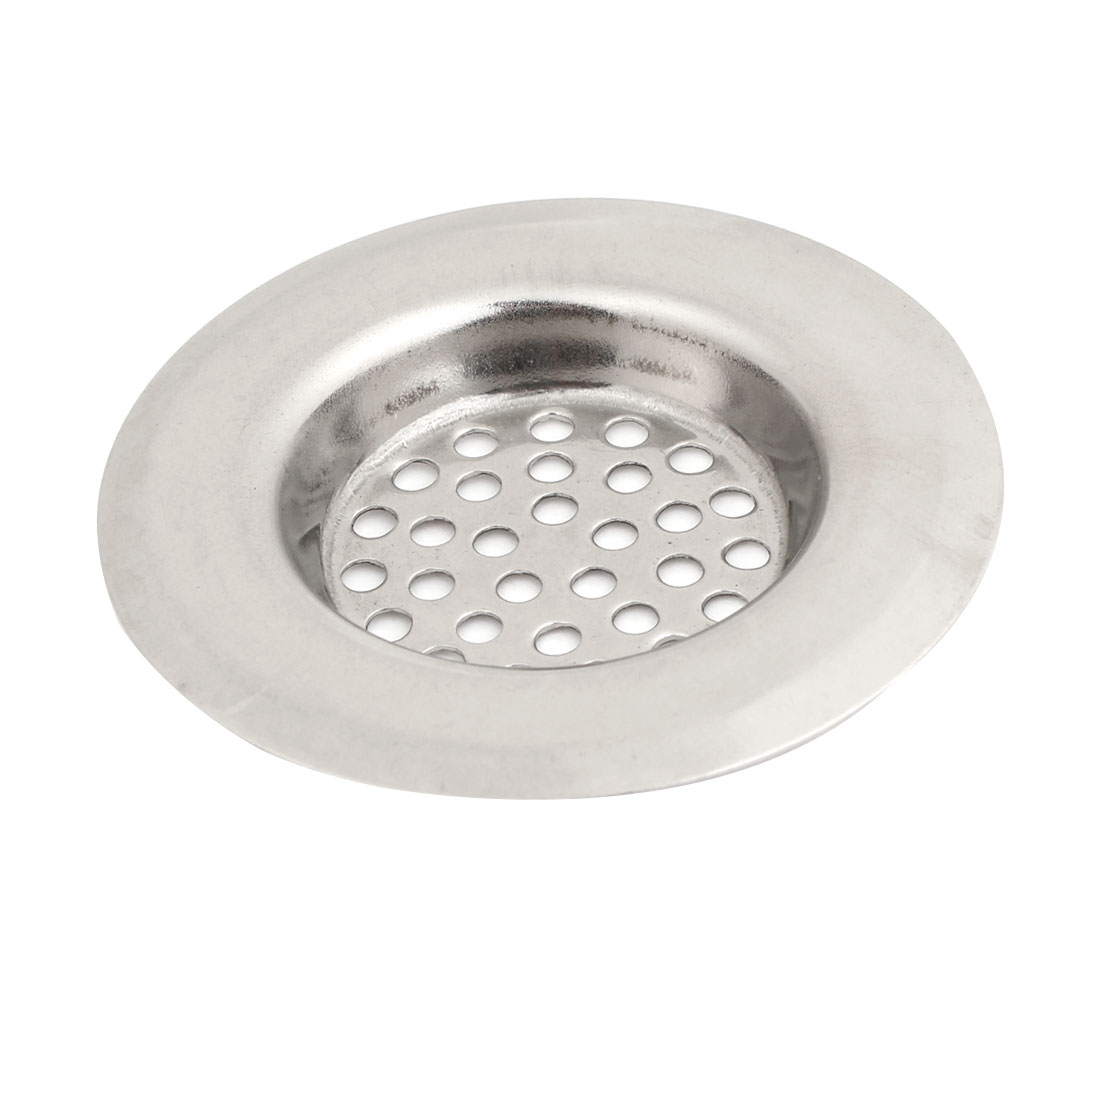 Home Silver Tone Stainless Steel Water Sink Drainer Strainer 2.5 Inch Dia